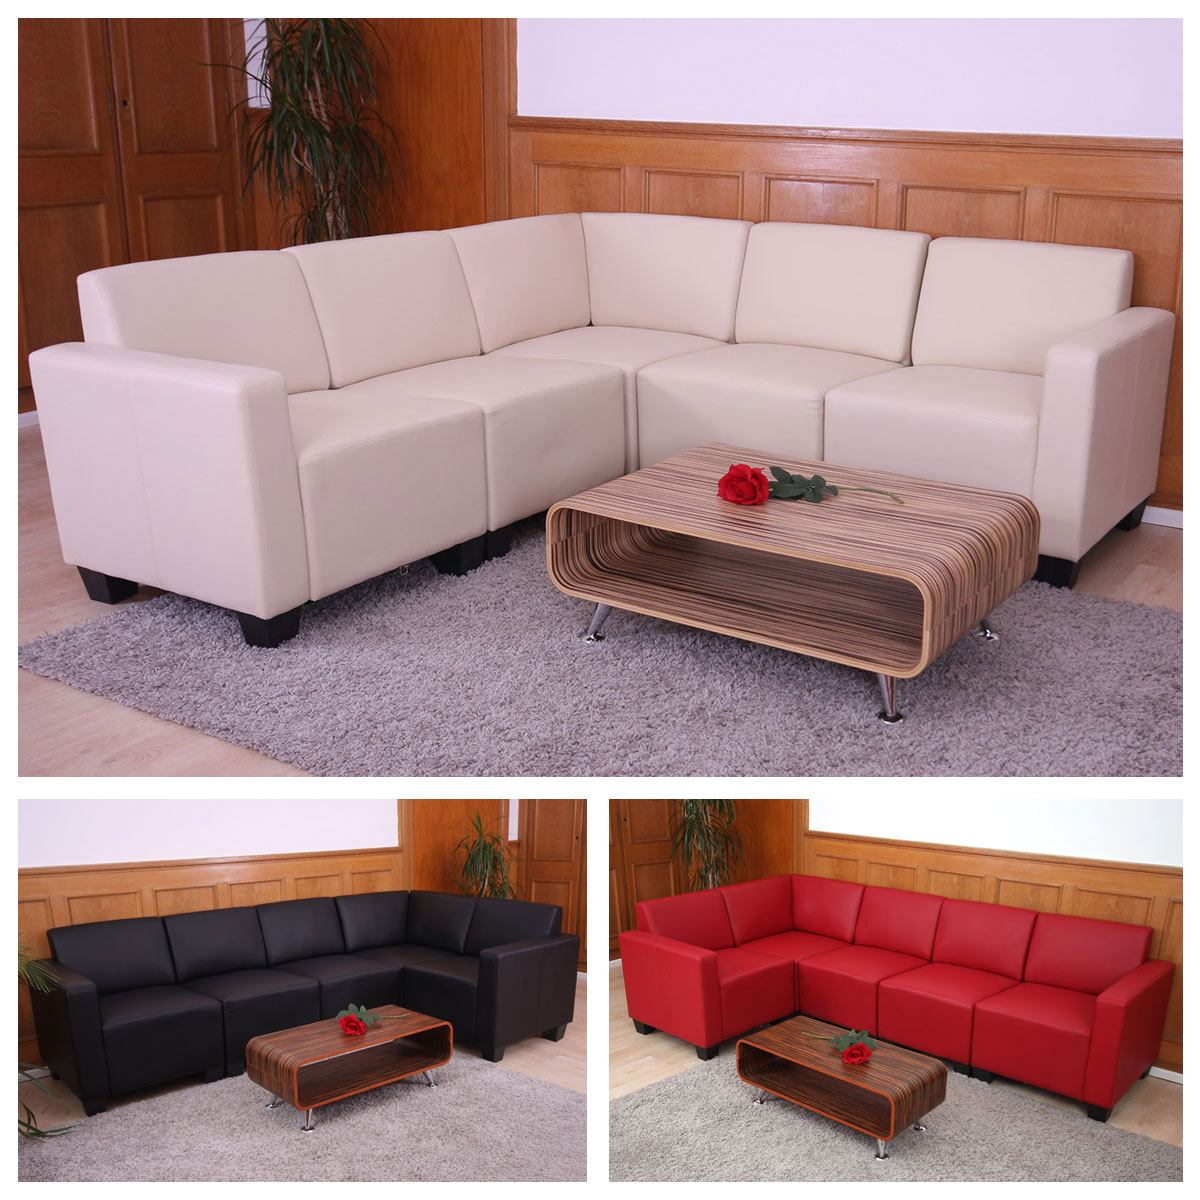 modular sofa system couch garnitur lyon 5 kunstleder ebay. Black Bedroom Furniture Sets. Home Design Ideas